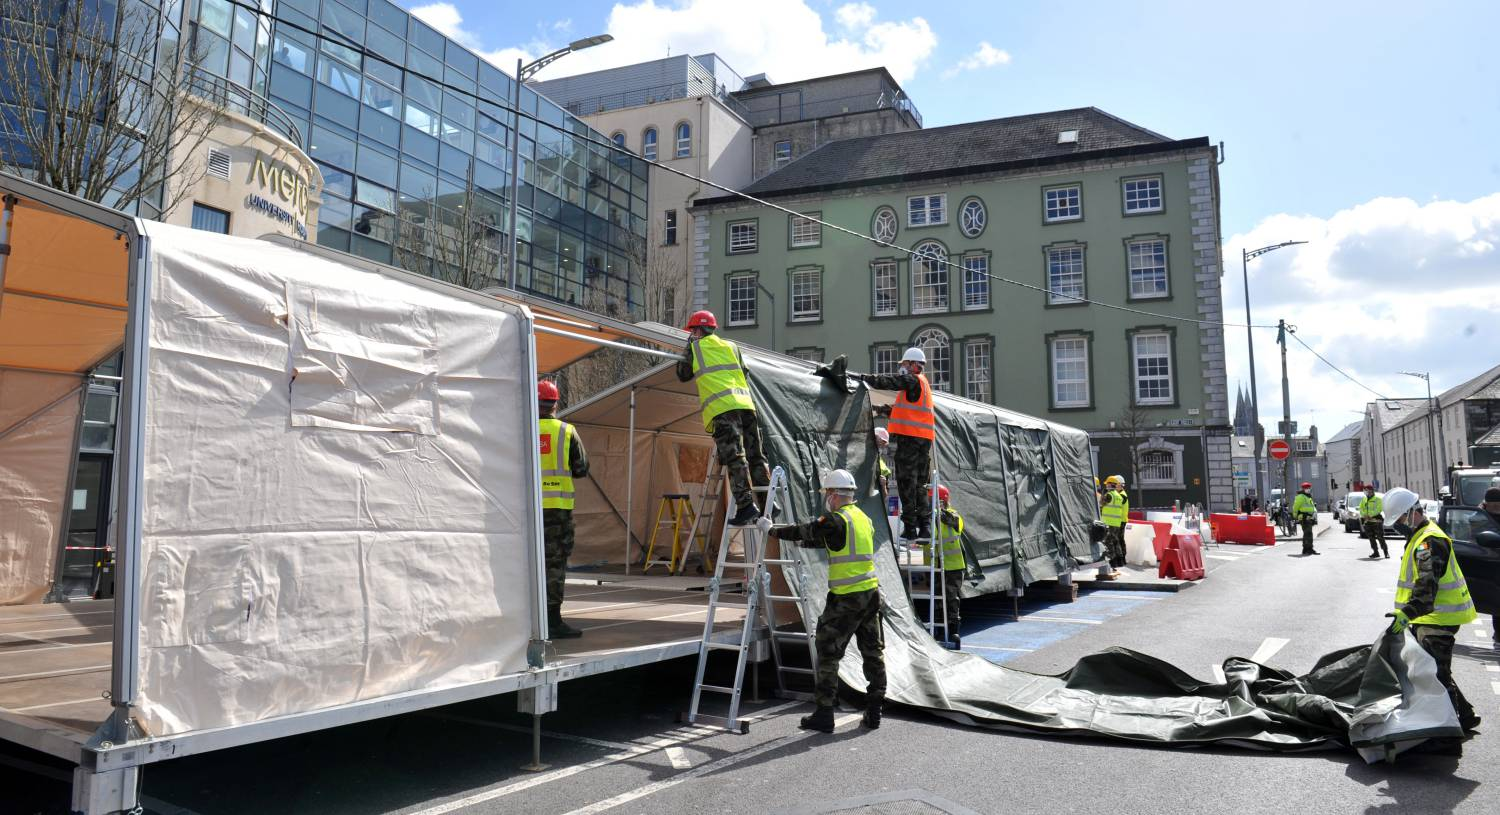 Army on standby to assist HSE as soldiers erect tents at the Mercy Hospital in Cork